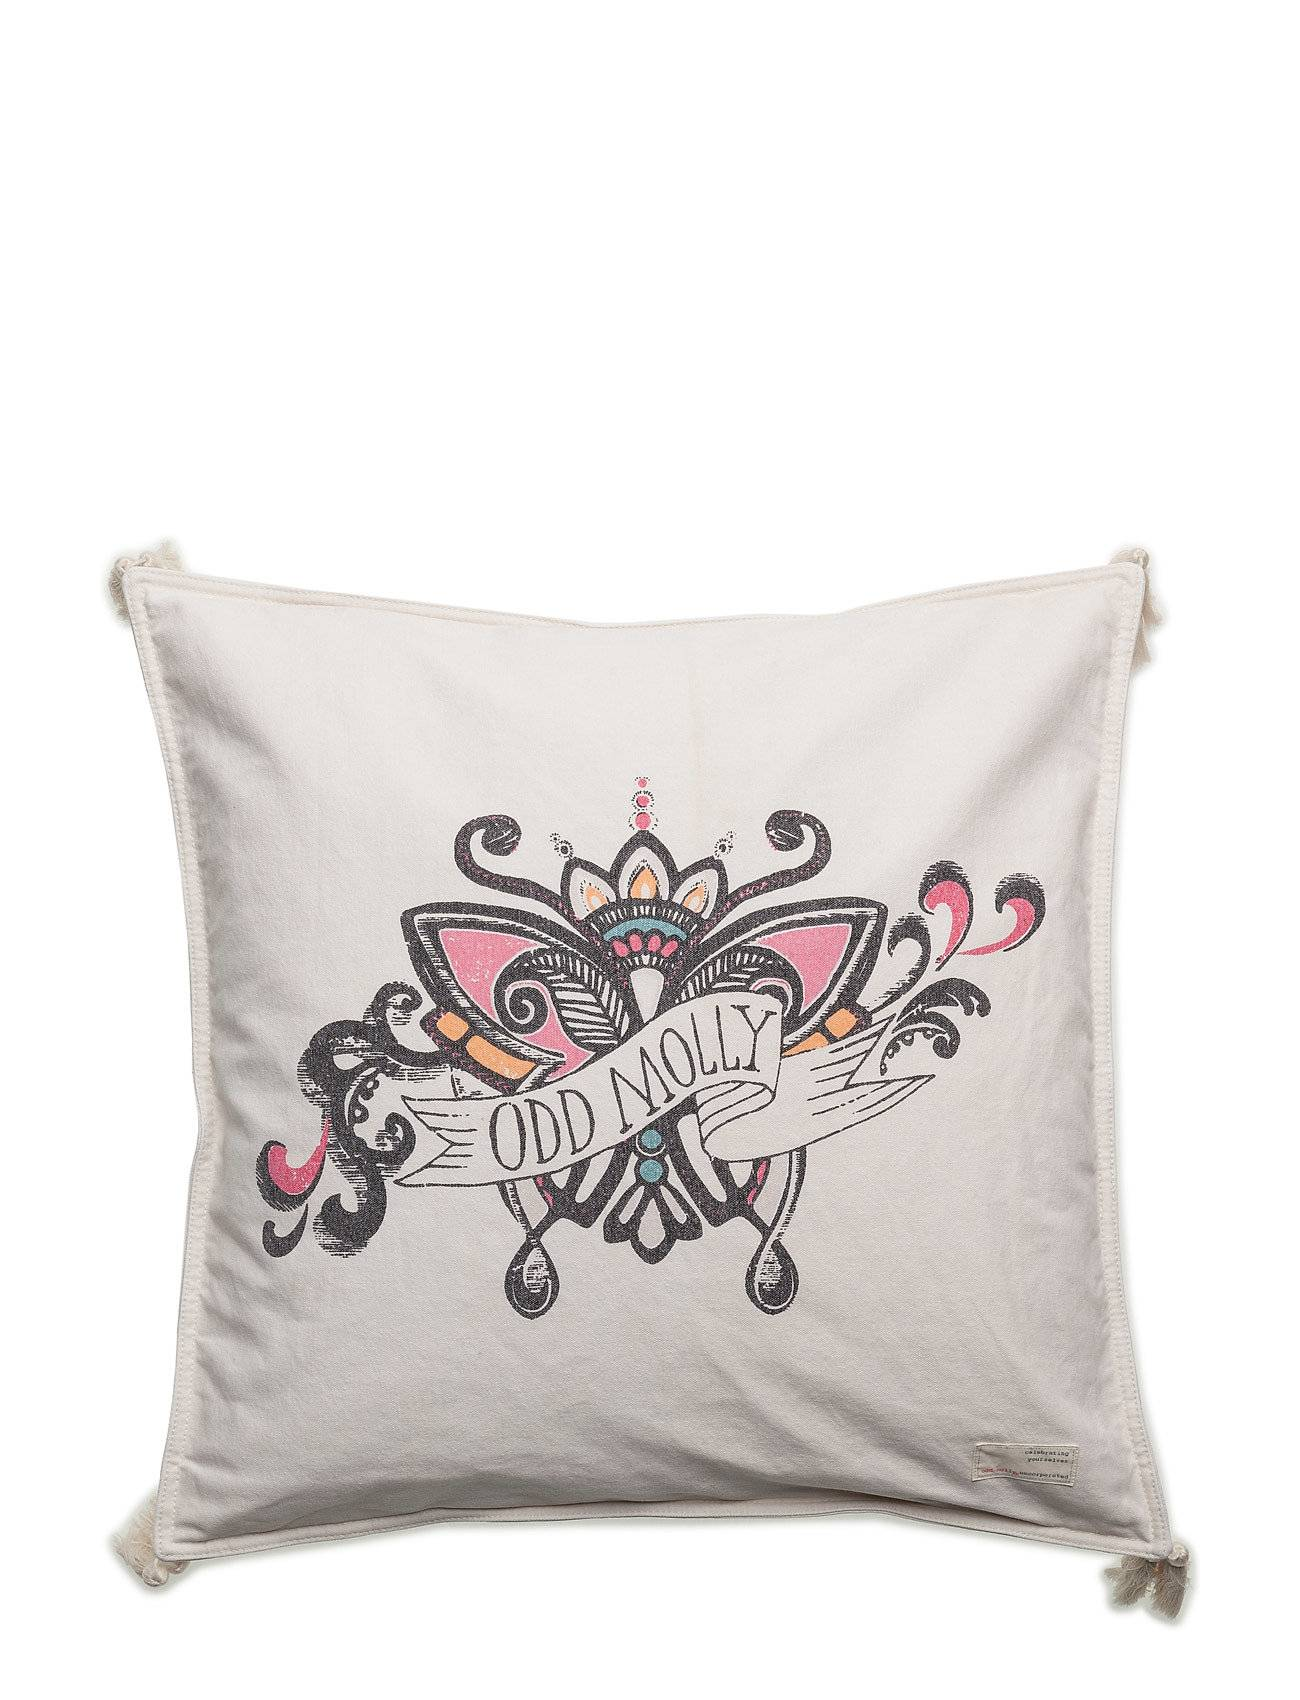 ODD MOLLY HOME Lounging Around Cushion Cover